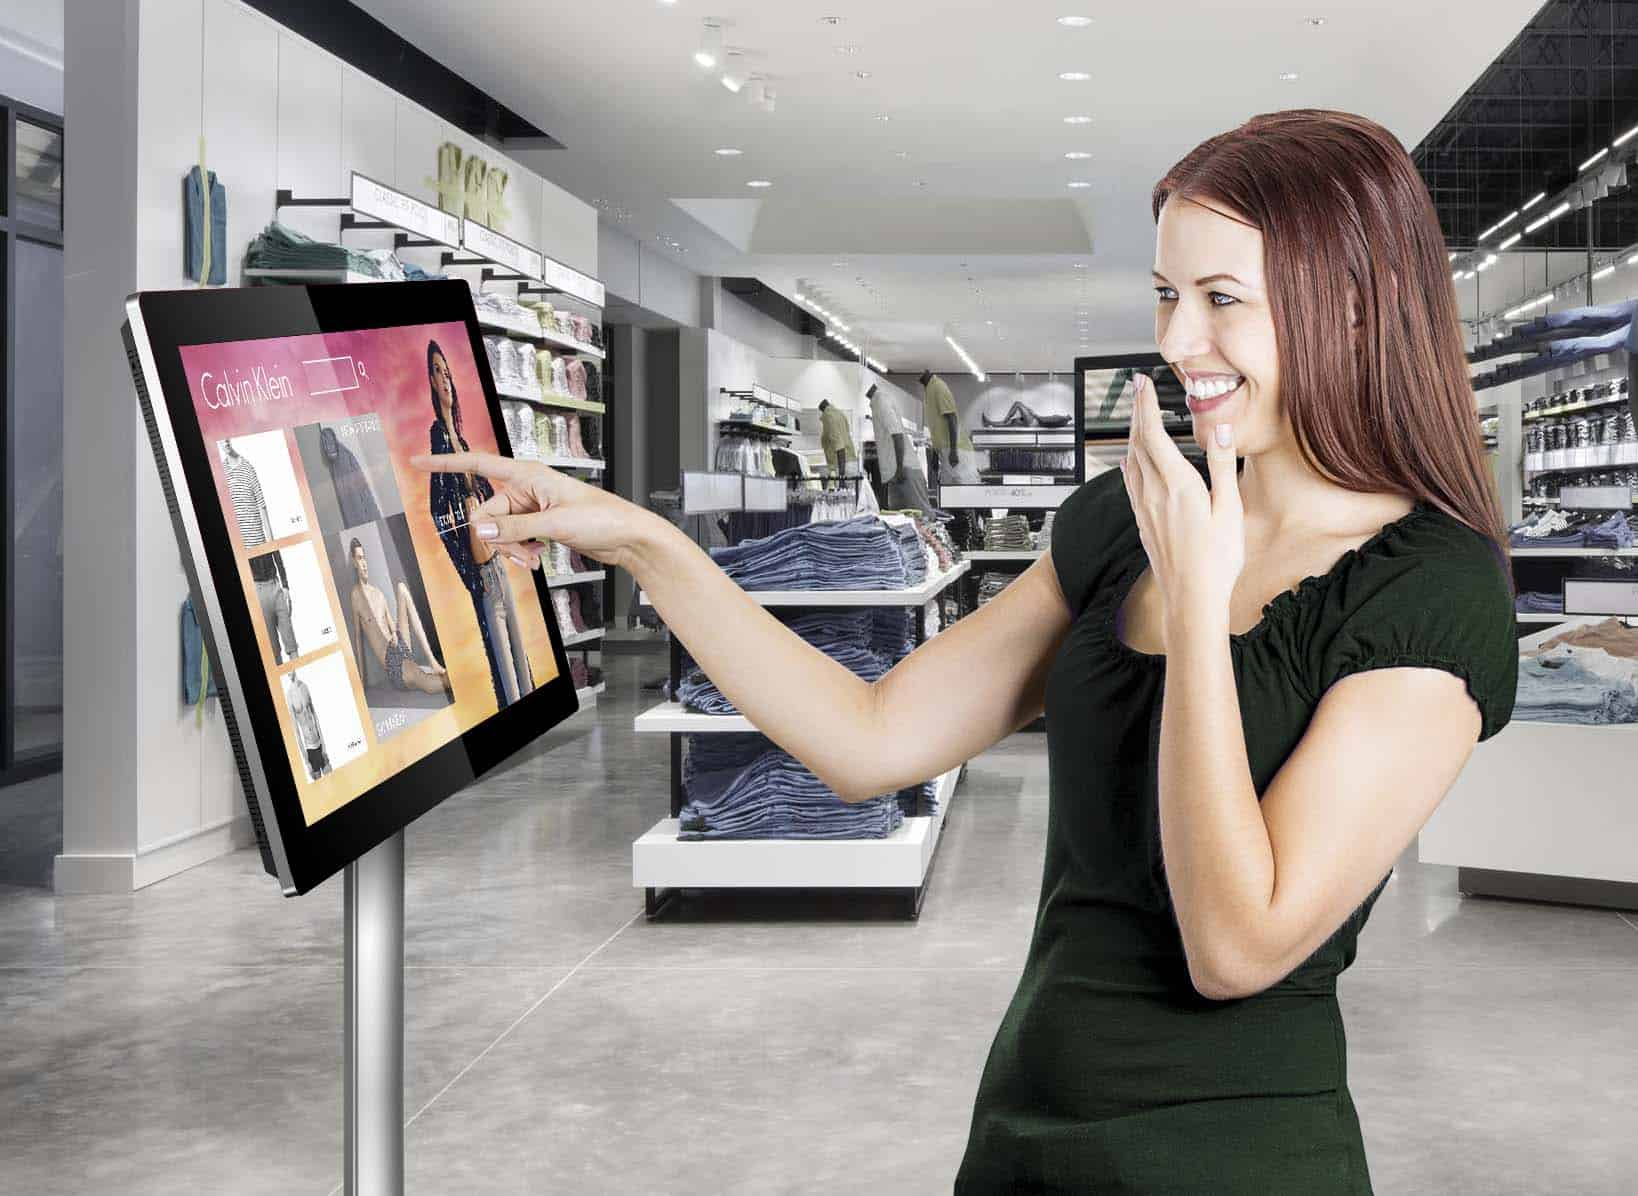 How To Effectively Use A Touch Screen In Retail Digital